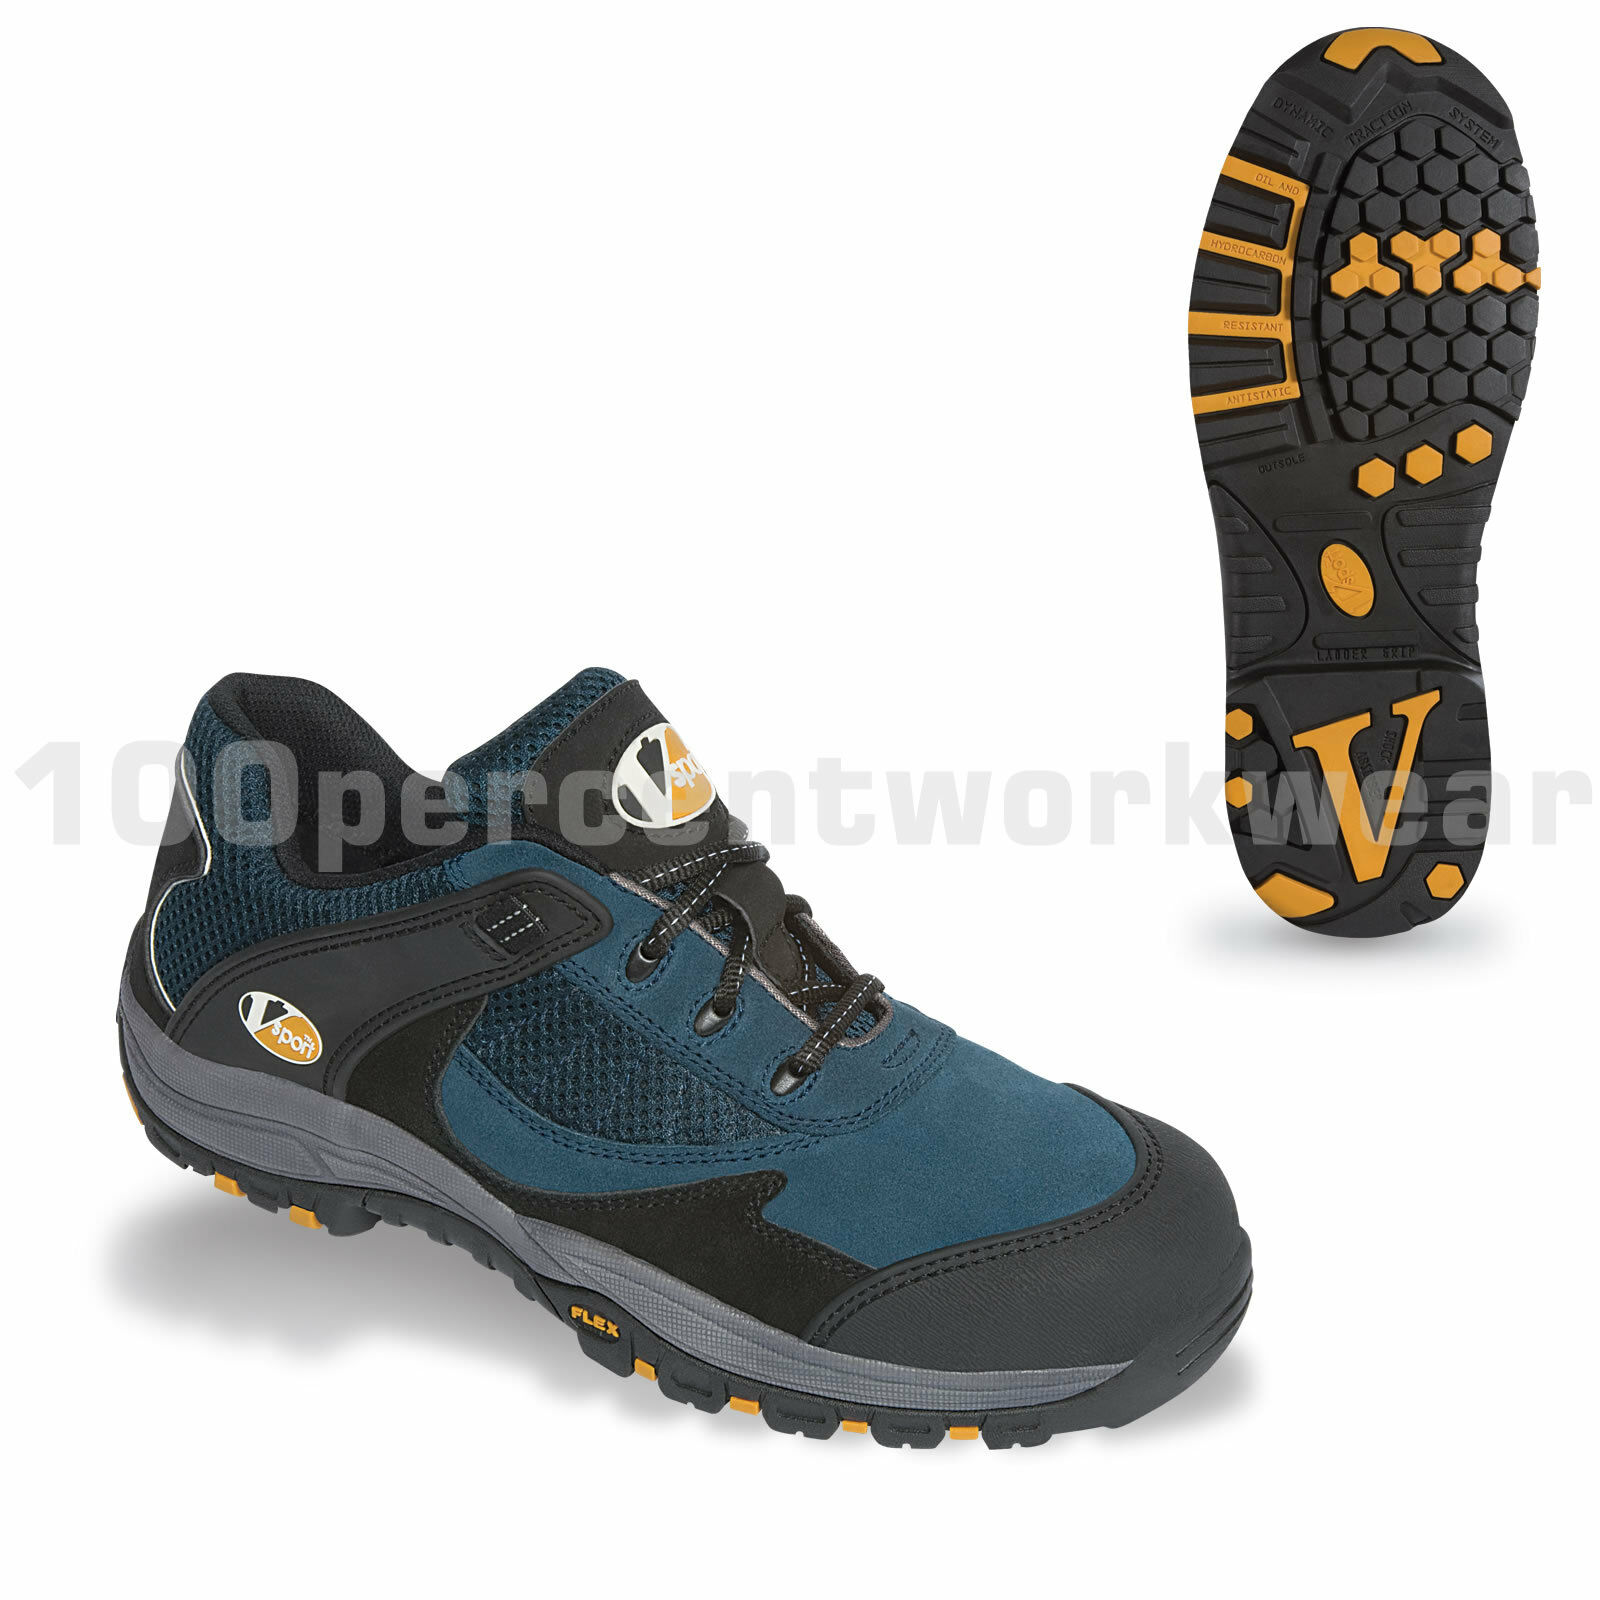 V12 Vtech Safety VS400 PITSTOP Work Trainers Schuhes Blau Free Suede Toe Cap Metal Free Blau 152434